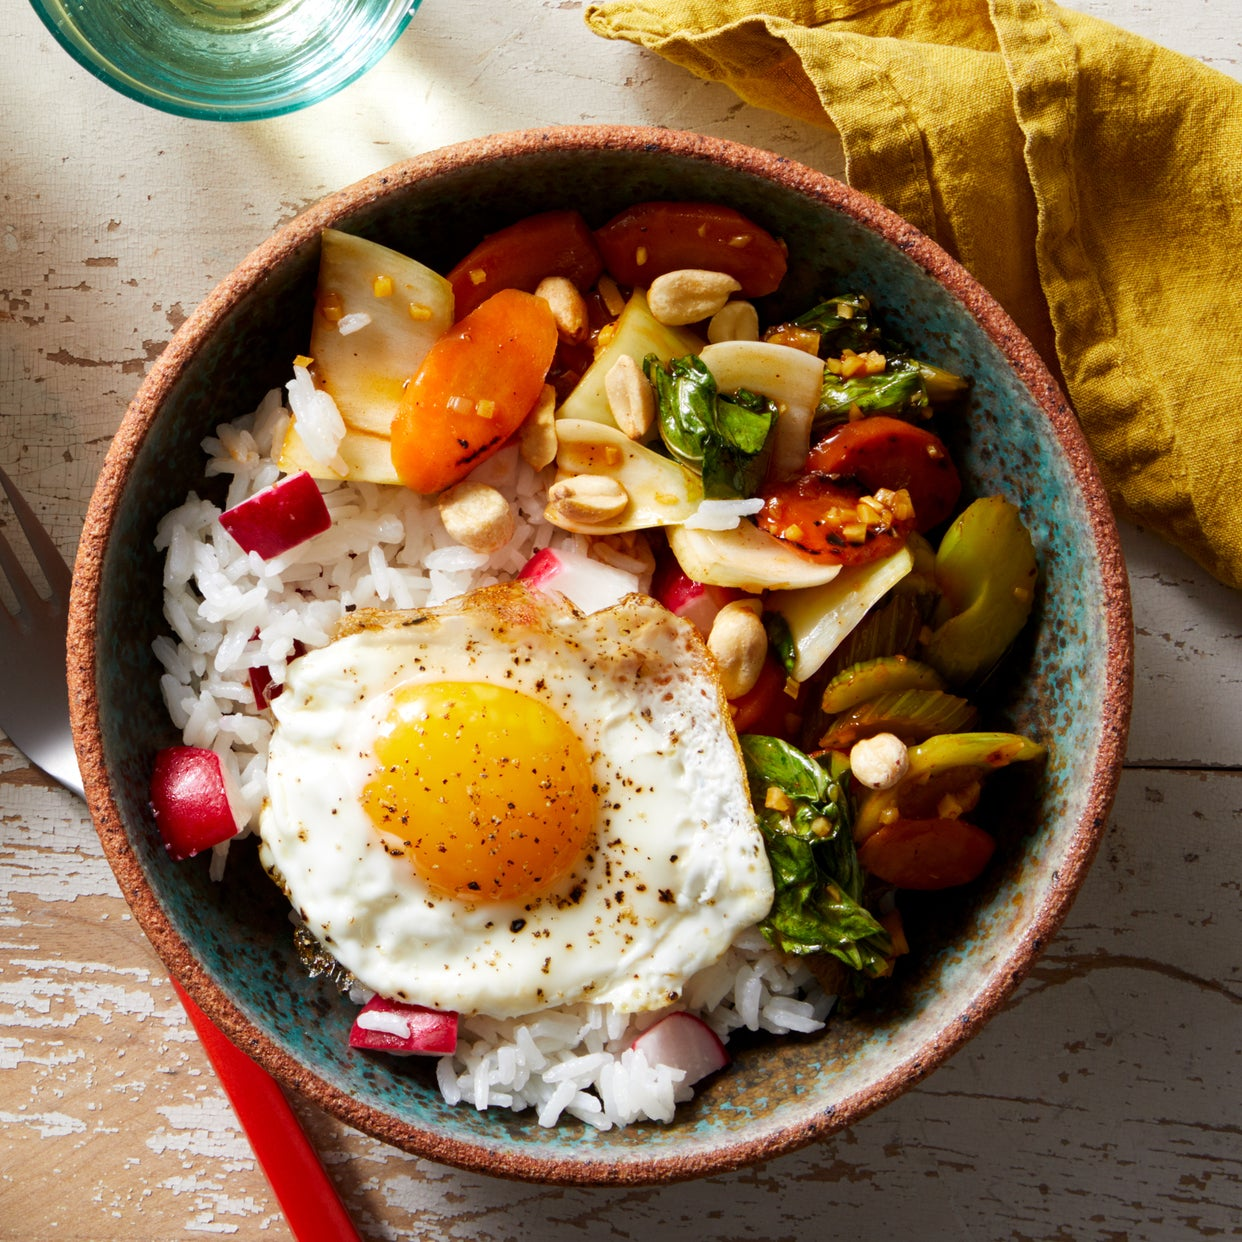 Recipe: Sweet & Sour Vegetable Stir-Fry With Fried Eggs